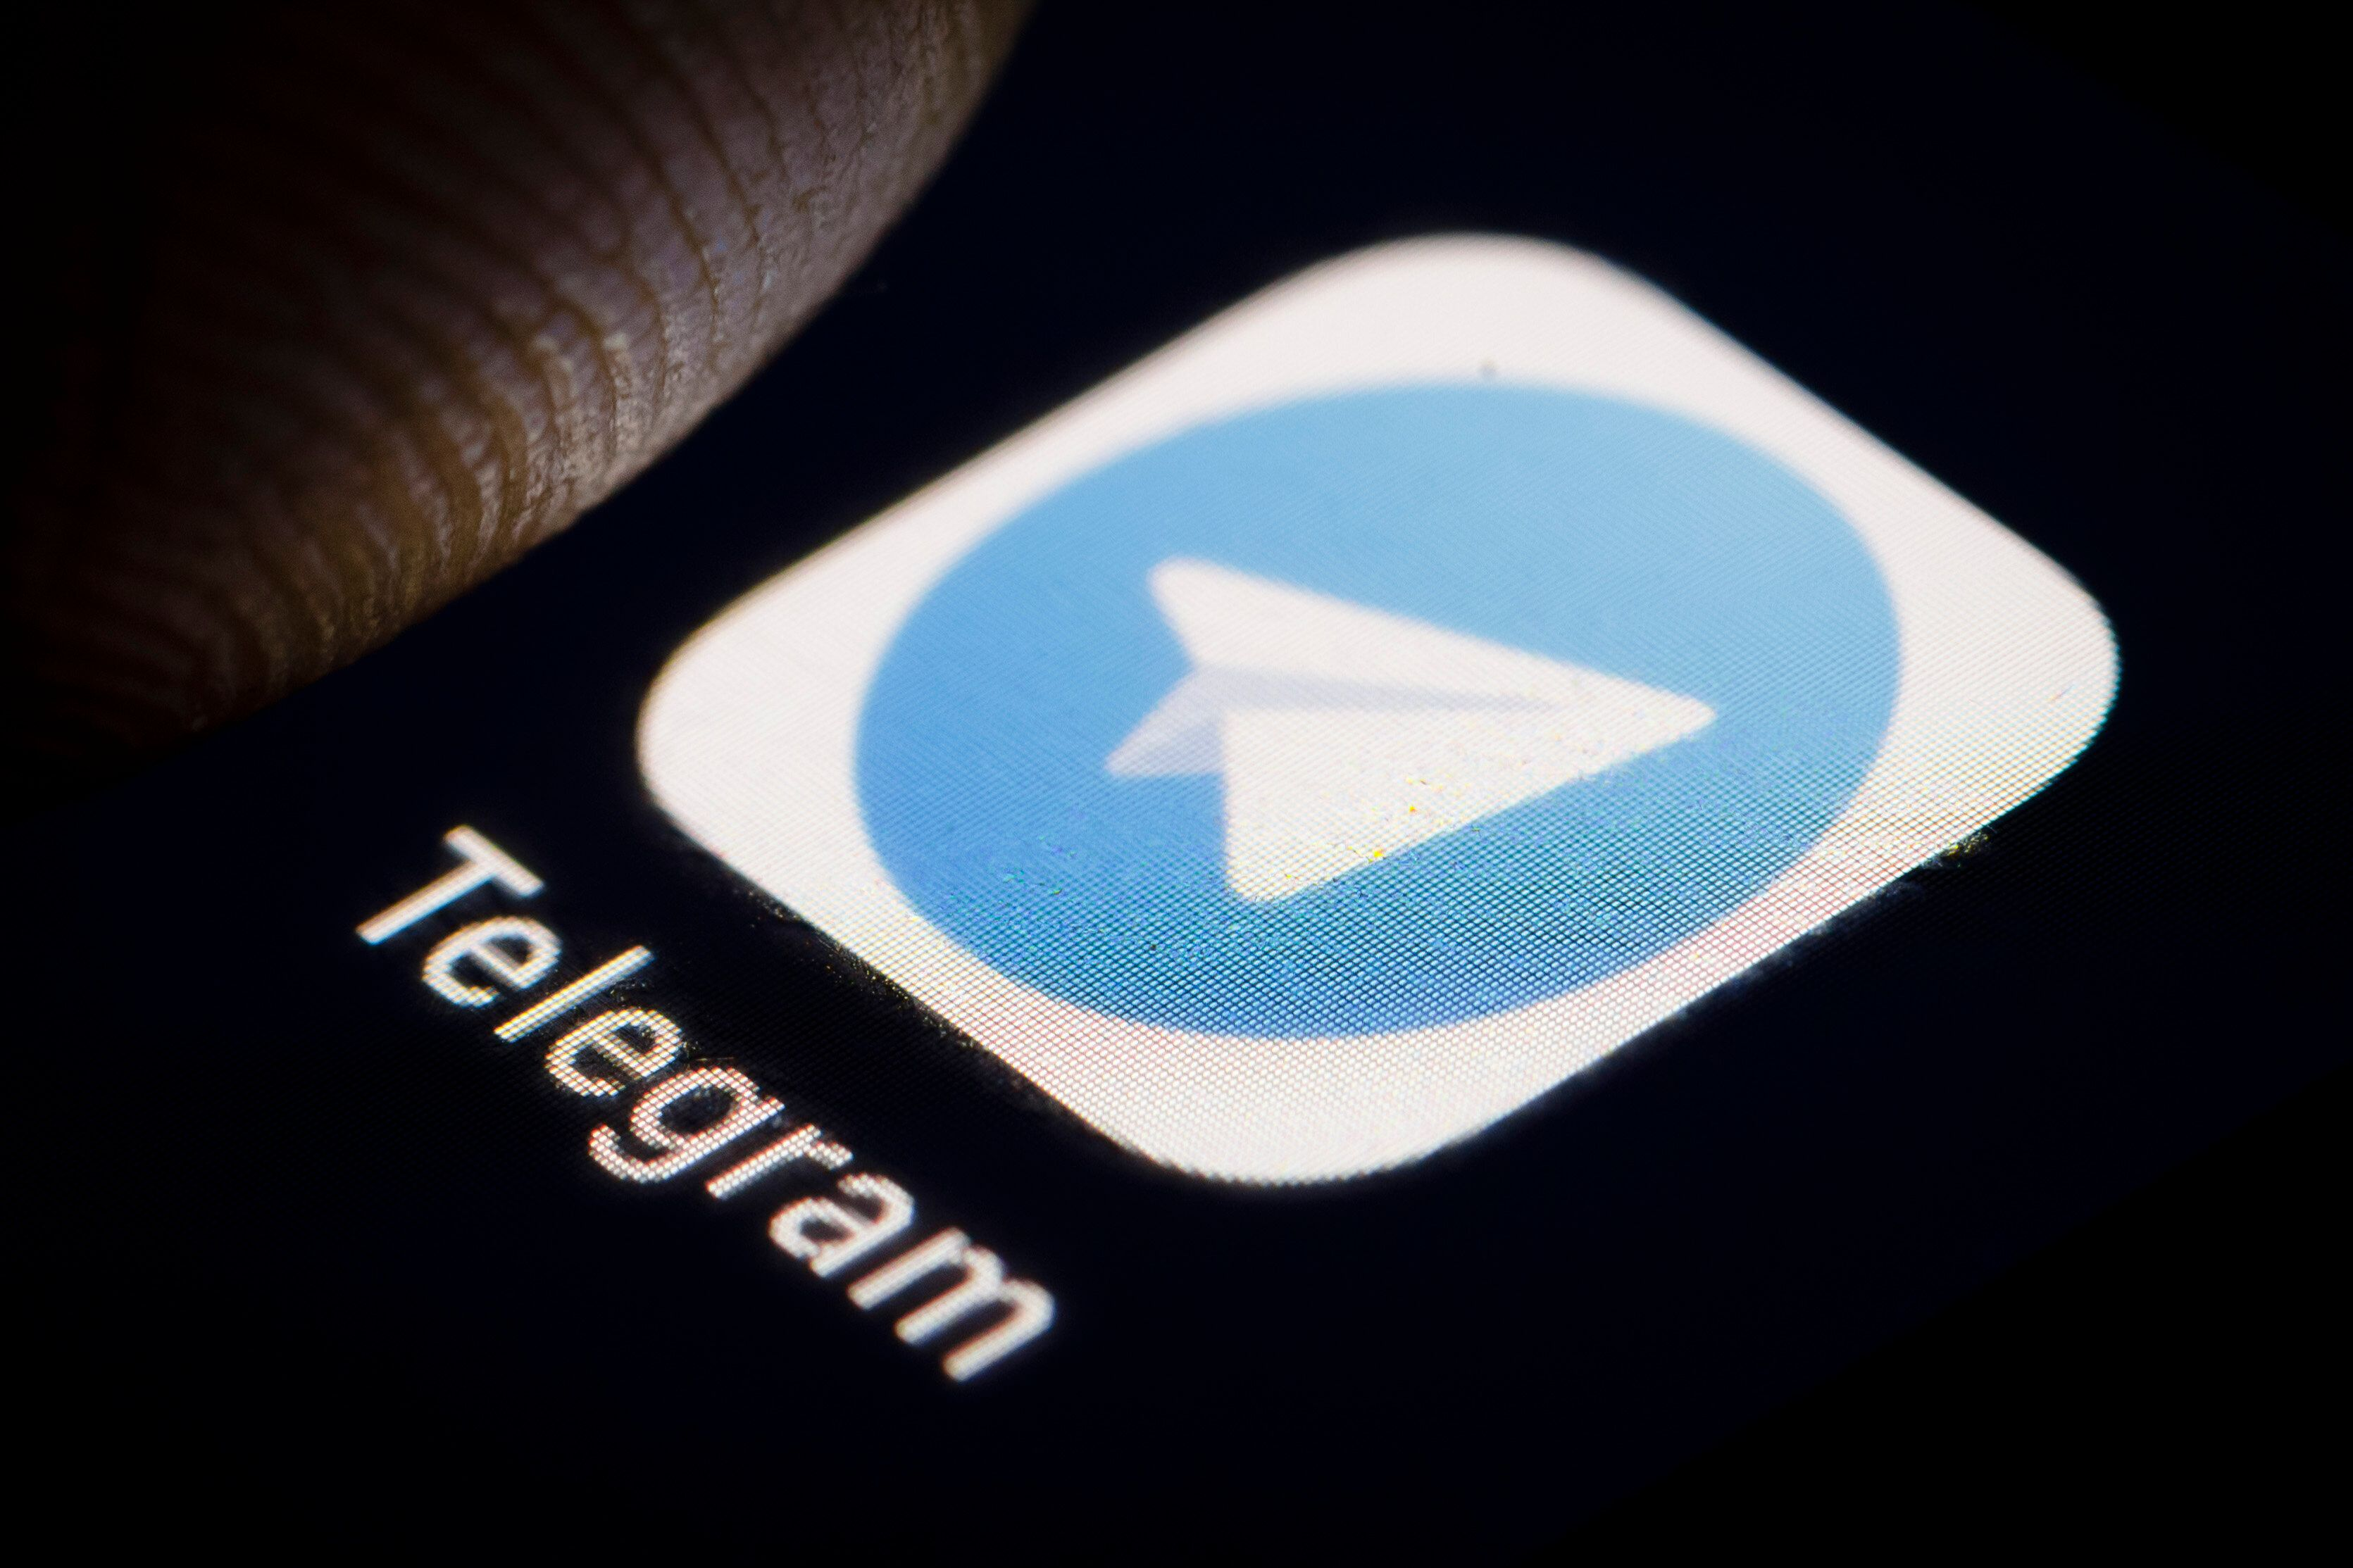 Telegram was created by a Russian tech magnate as a means of blocking governments from spying on communications.